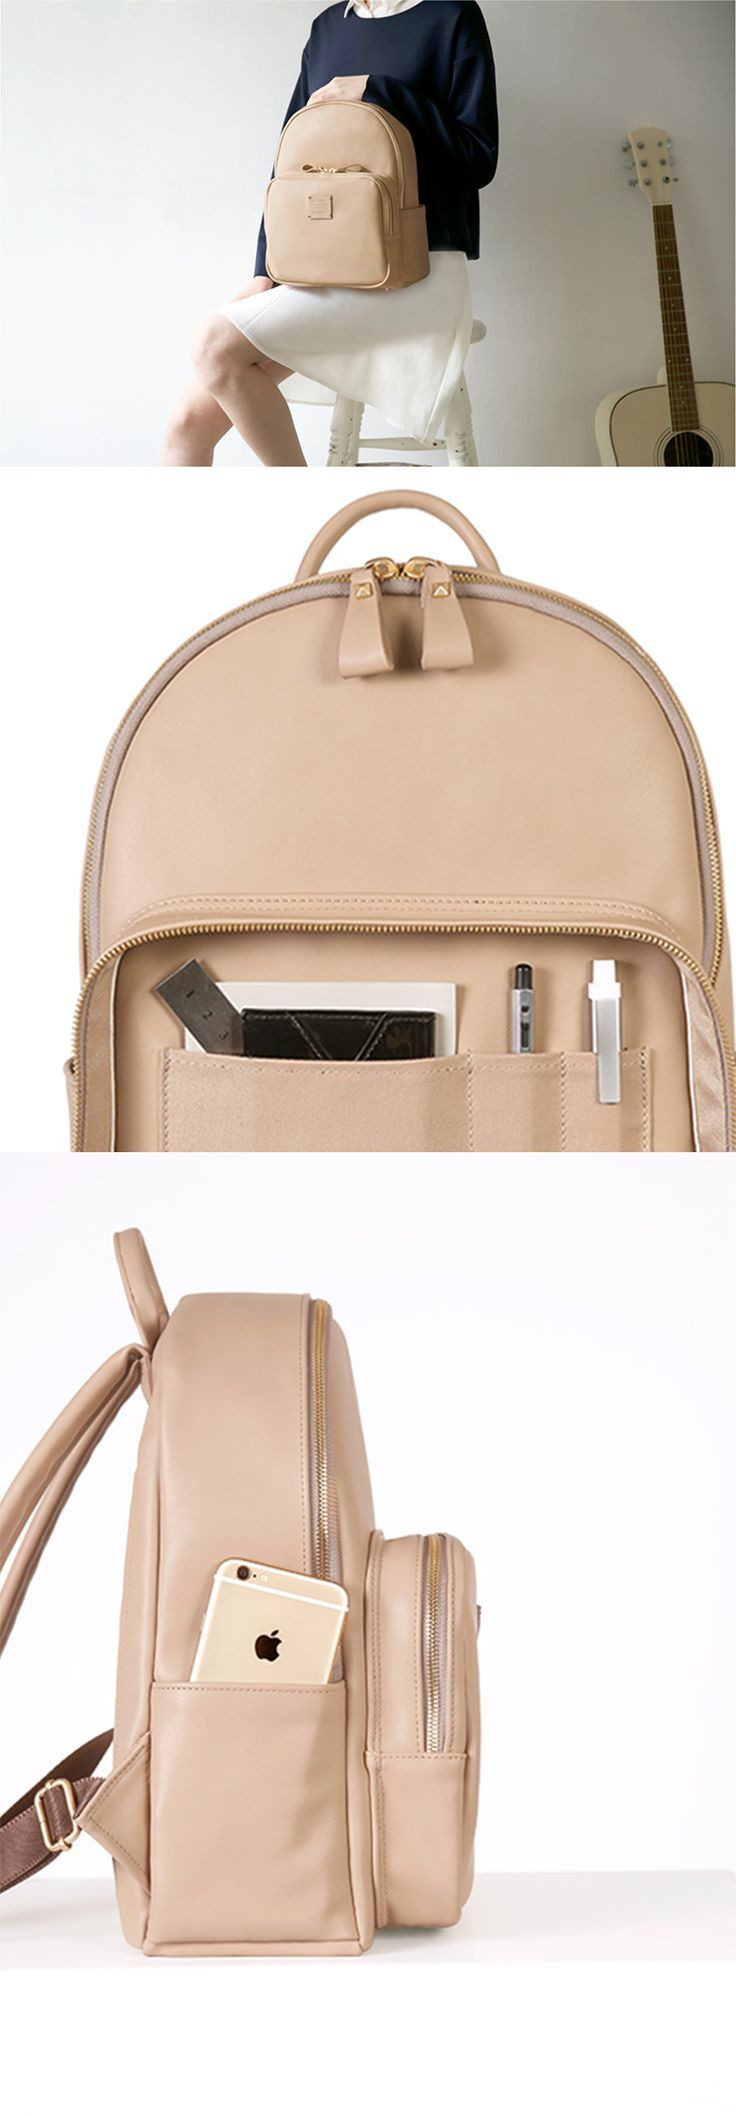 Take your style to the next level with the beautiful and timeless Square Mini Office Leather Backpack!: